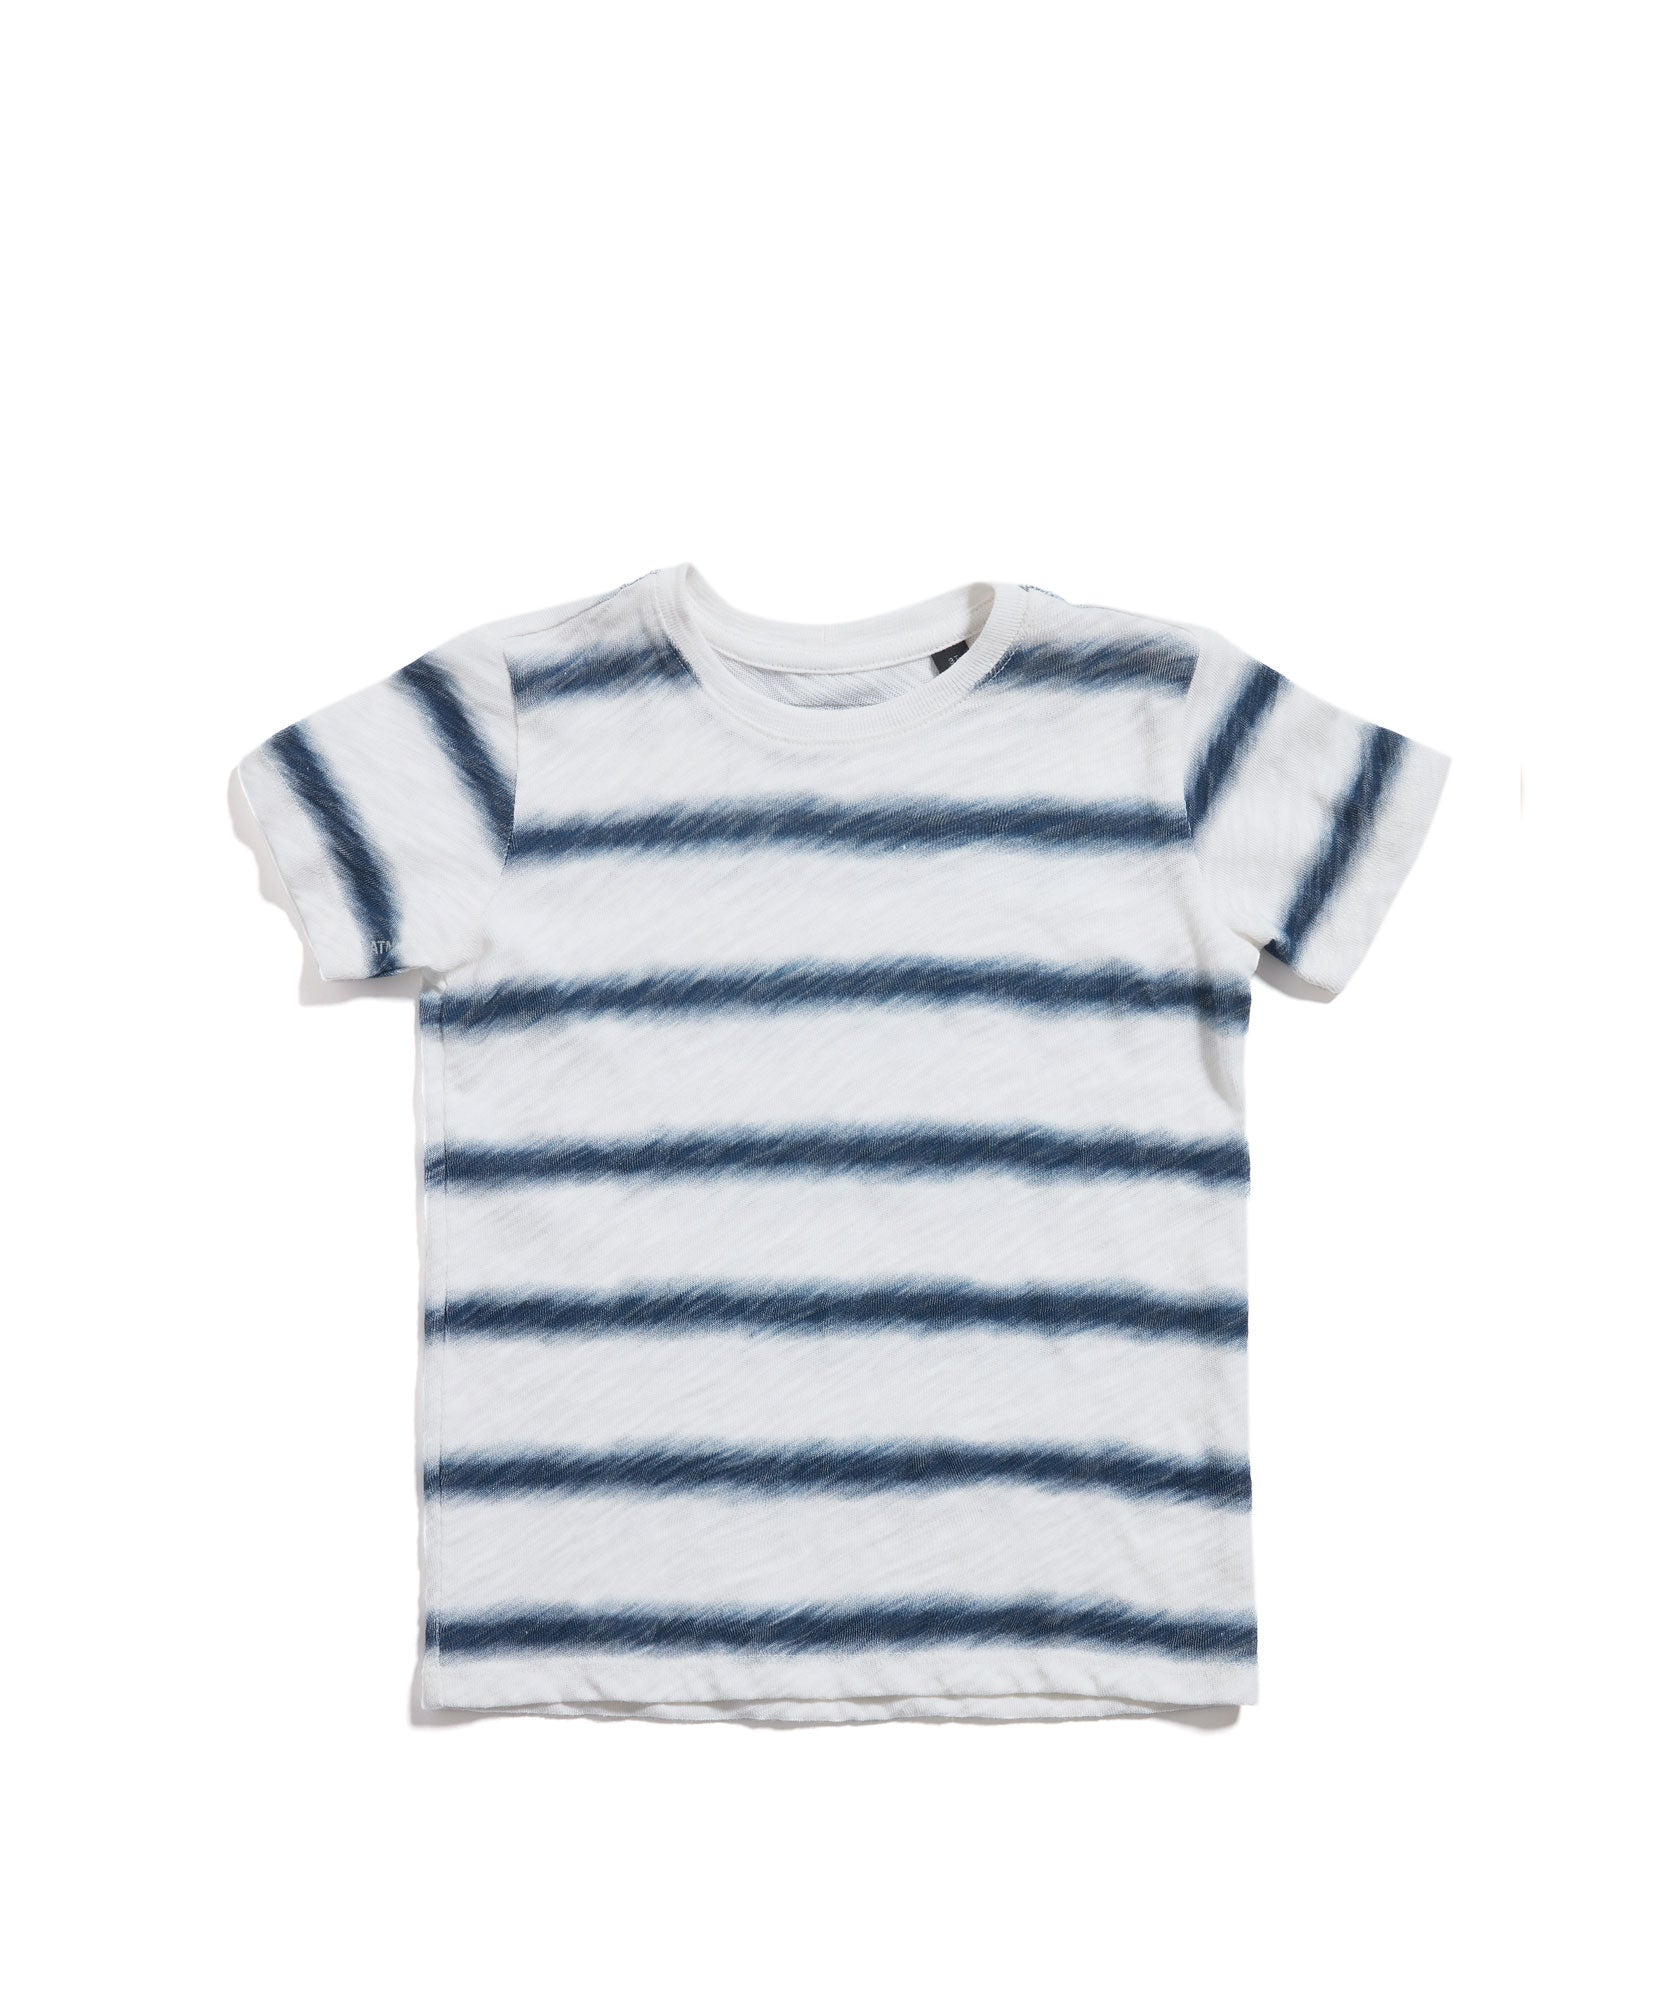 Chalk/ Midnight Stripe Kids Slub Jersey Short Sleeve Tee - Kid's Cotton Short Sleeve Tee by ATM Anthony Thomas Melillo